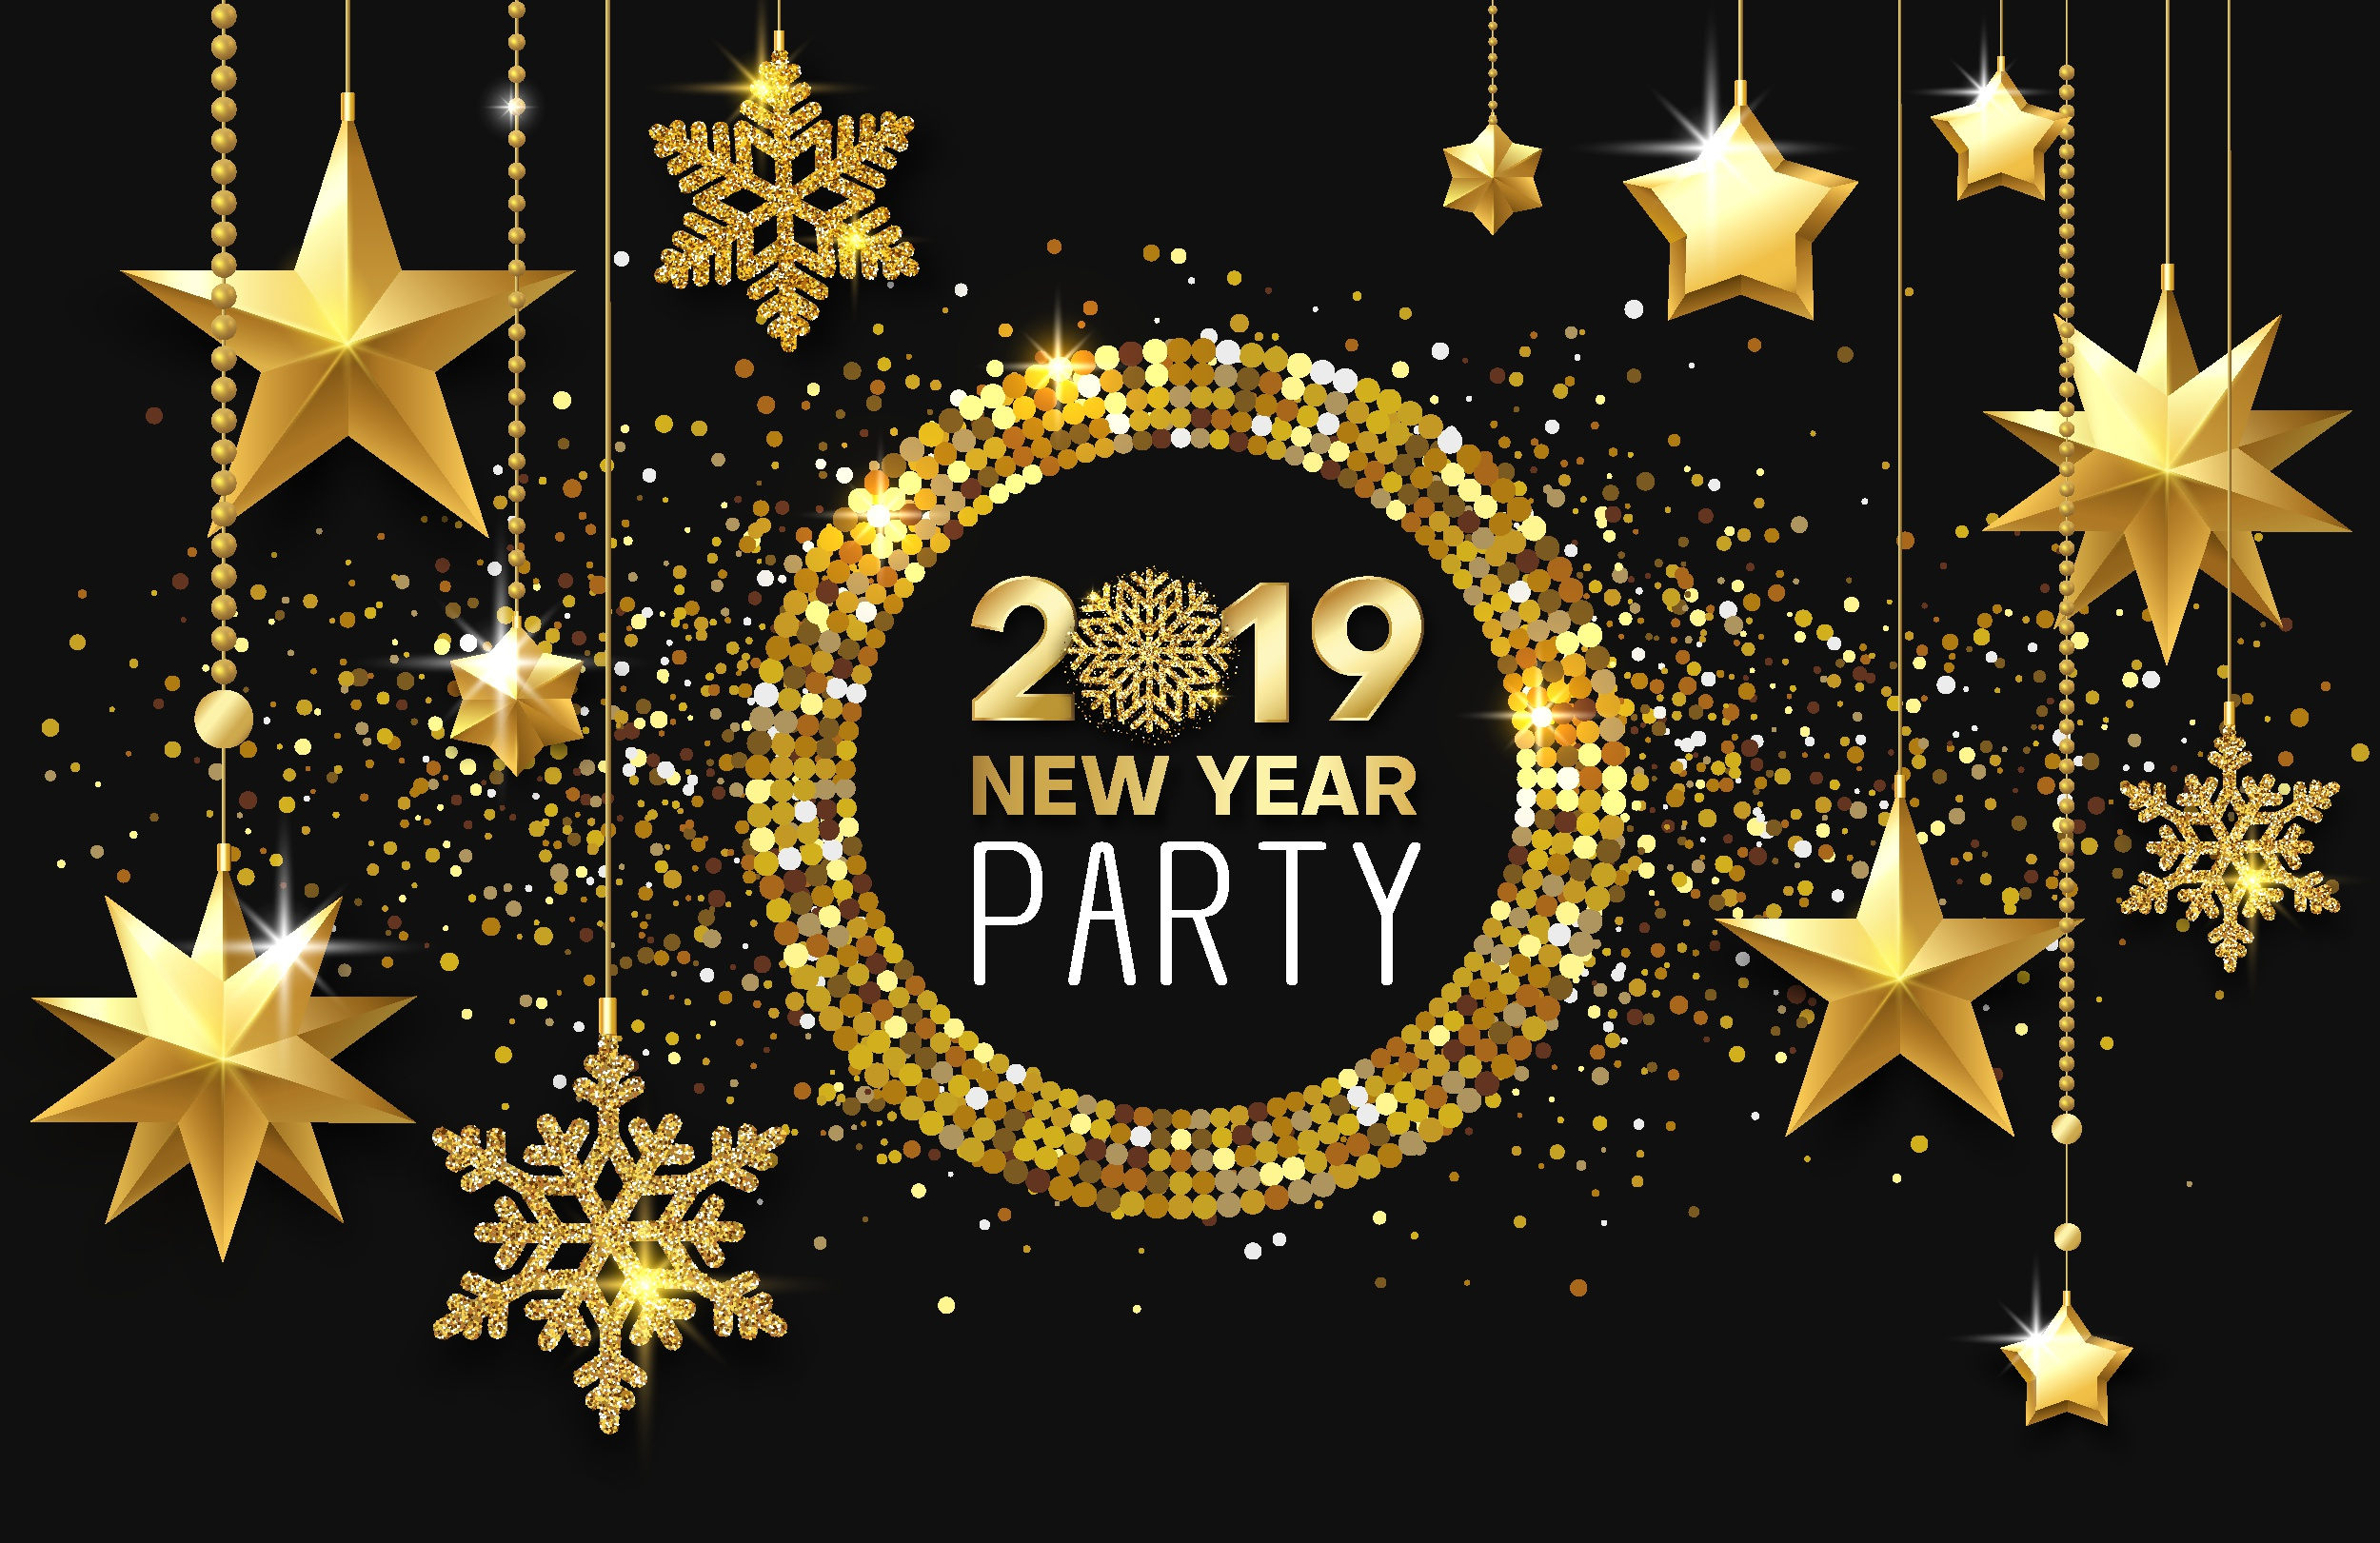 New Year Party Gold 2019